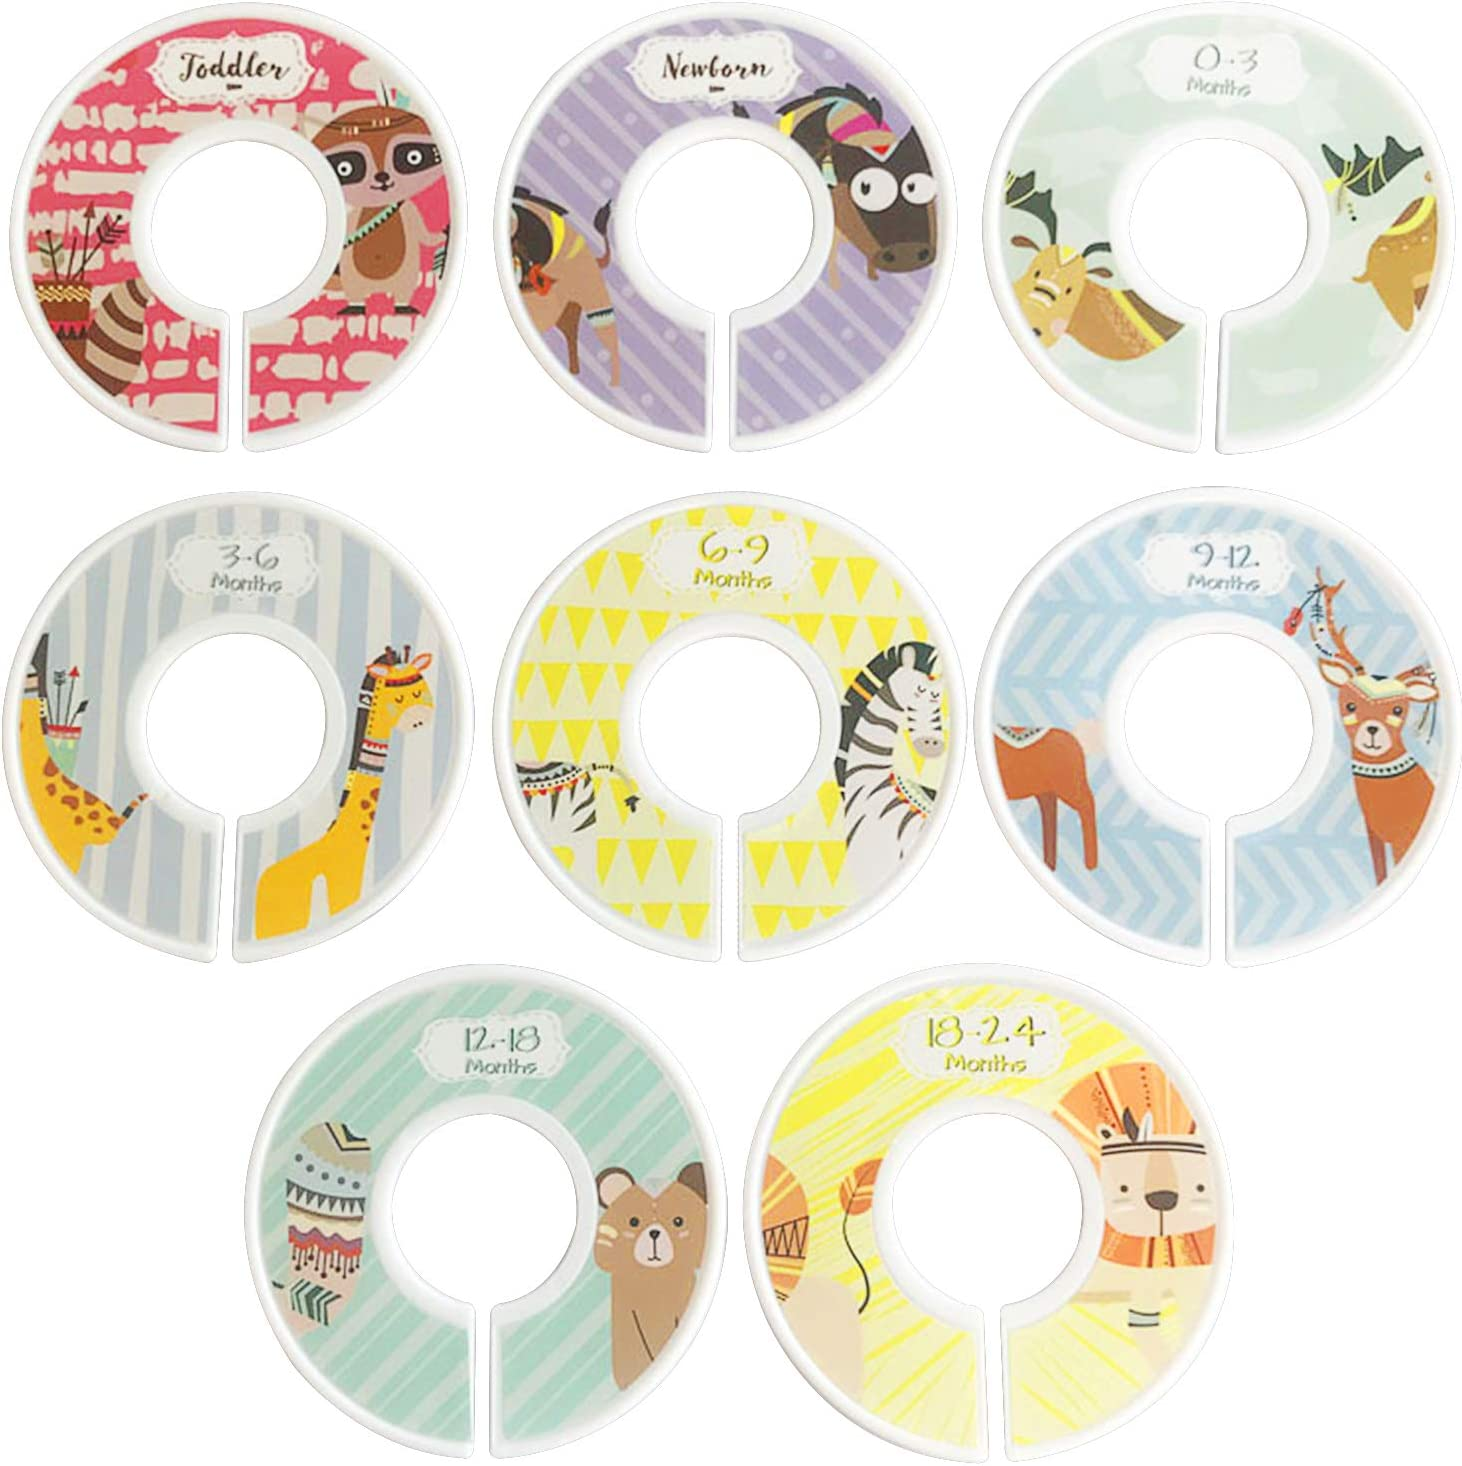 Baby Closet Size Dividers,8 Pieces Nursery Closet Dividers for Baby Clothes,Cute Animal Nursery Decoration Closet Size Dividers for Boy or Girl